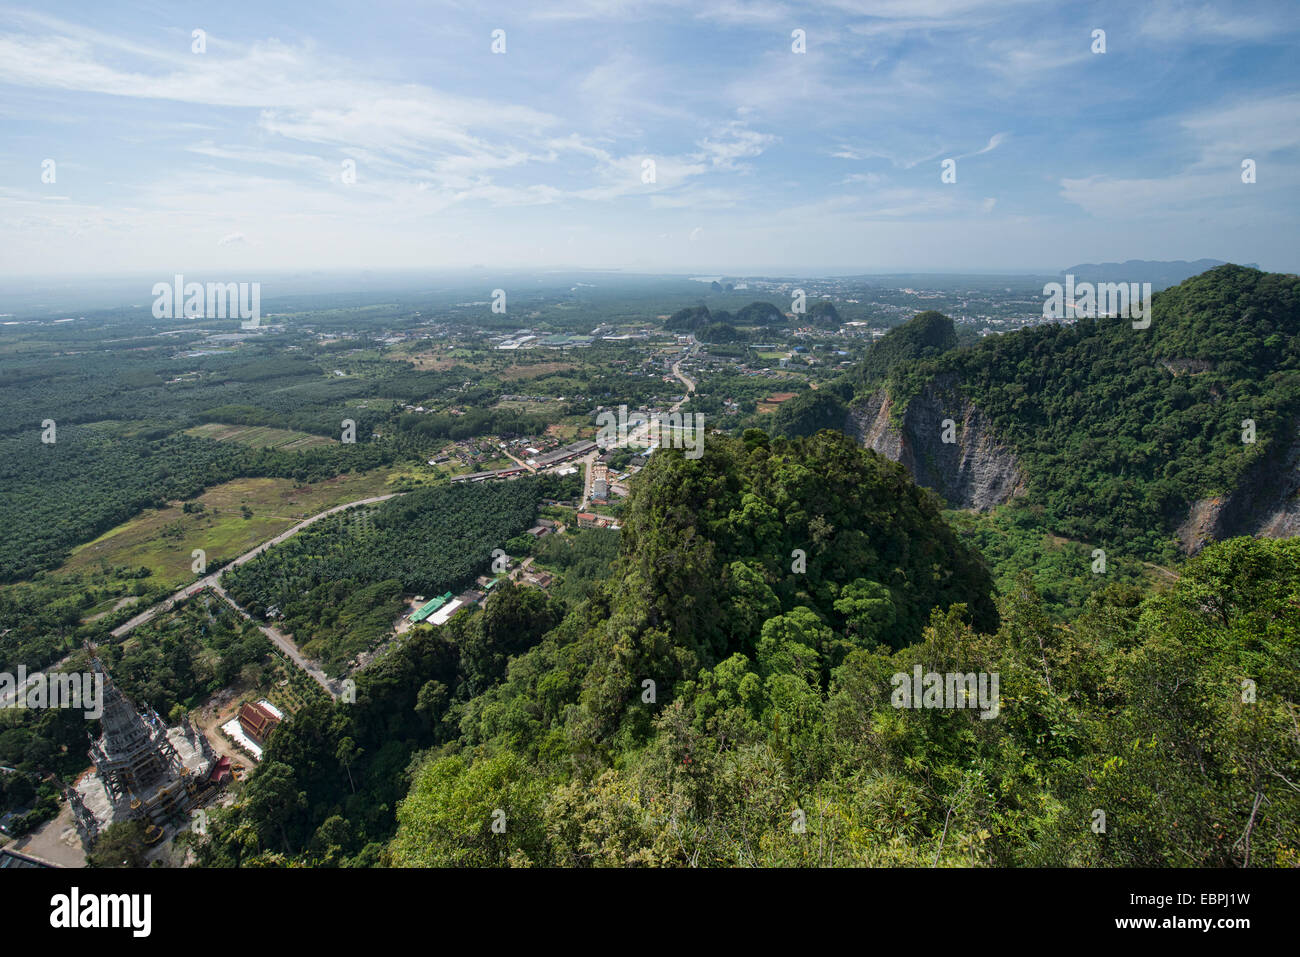 The view from the top of Wat Tham Sua Tiger Cave Temple in Krabi, Thailand - Stock Image